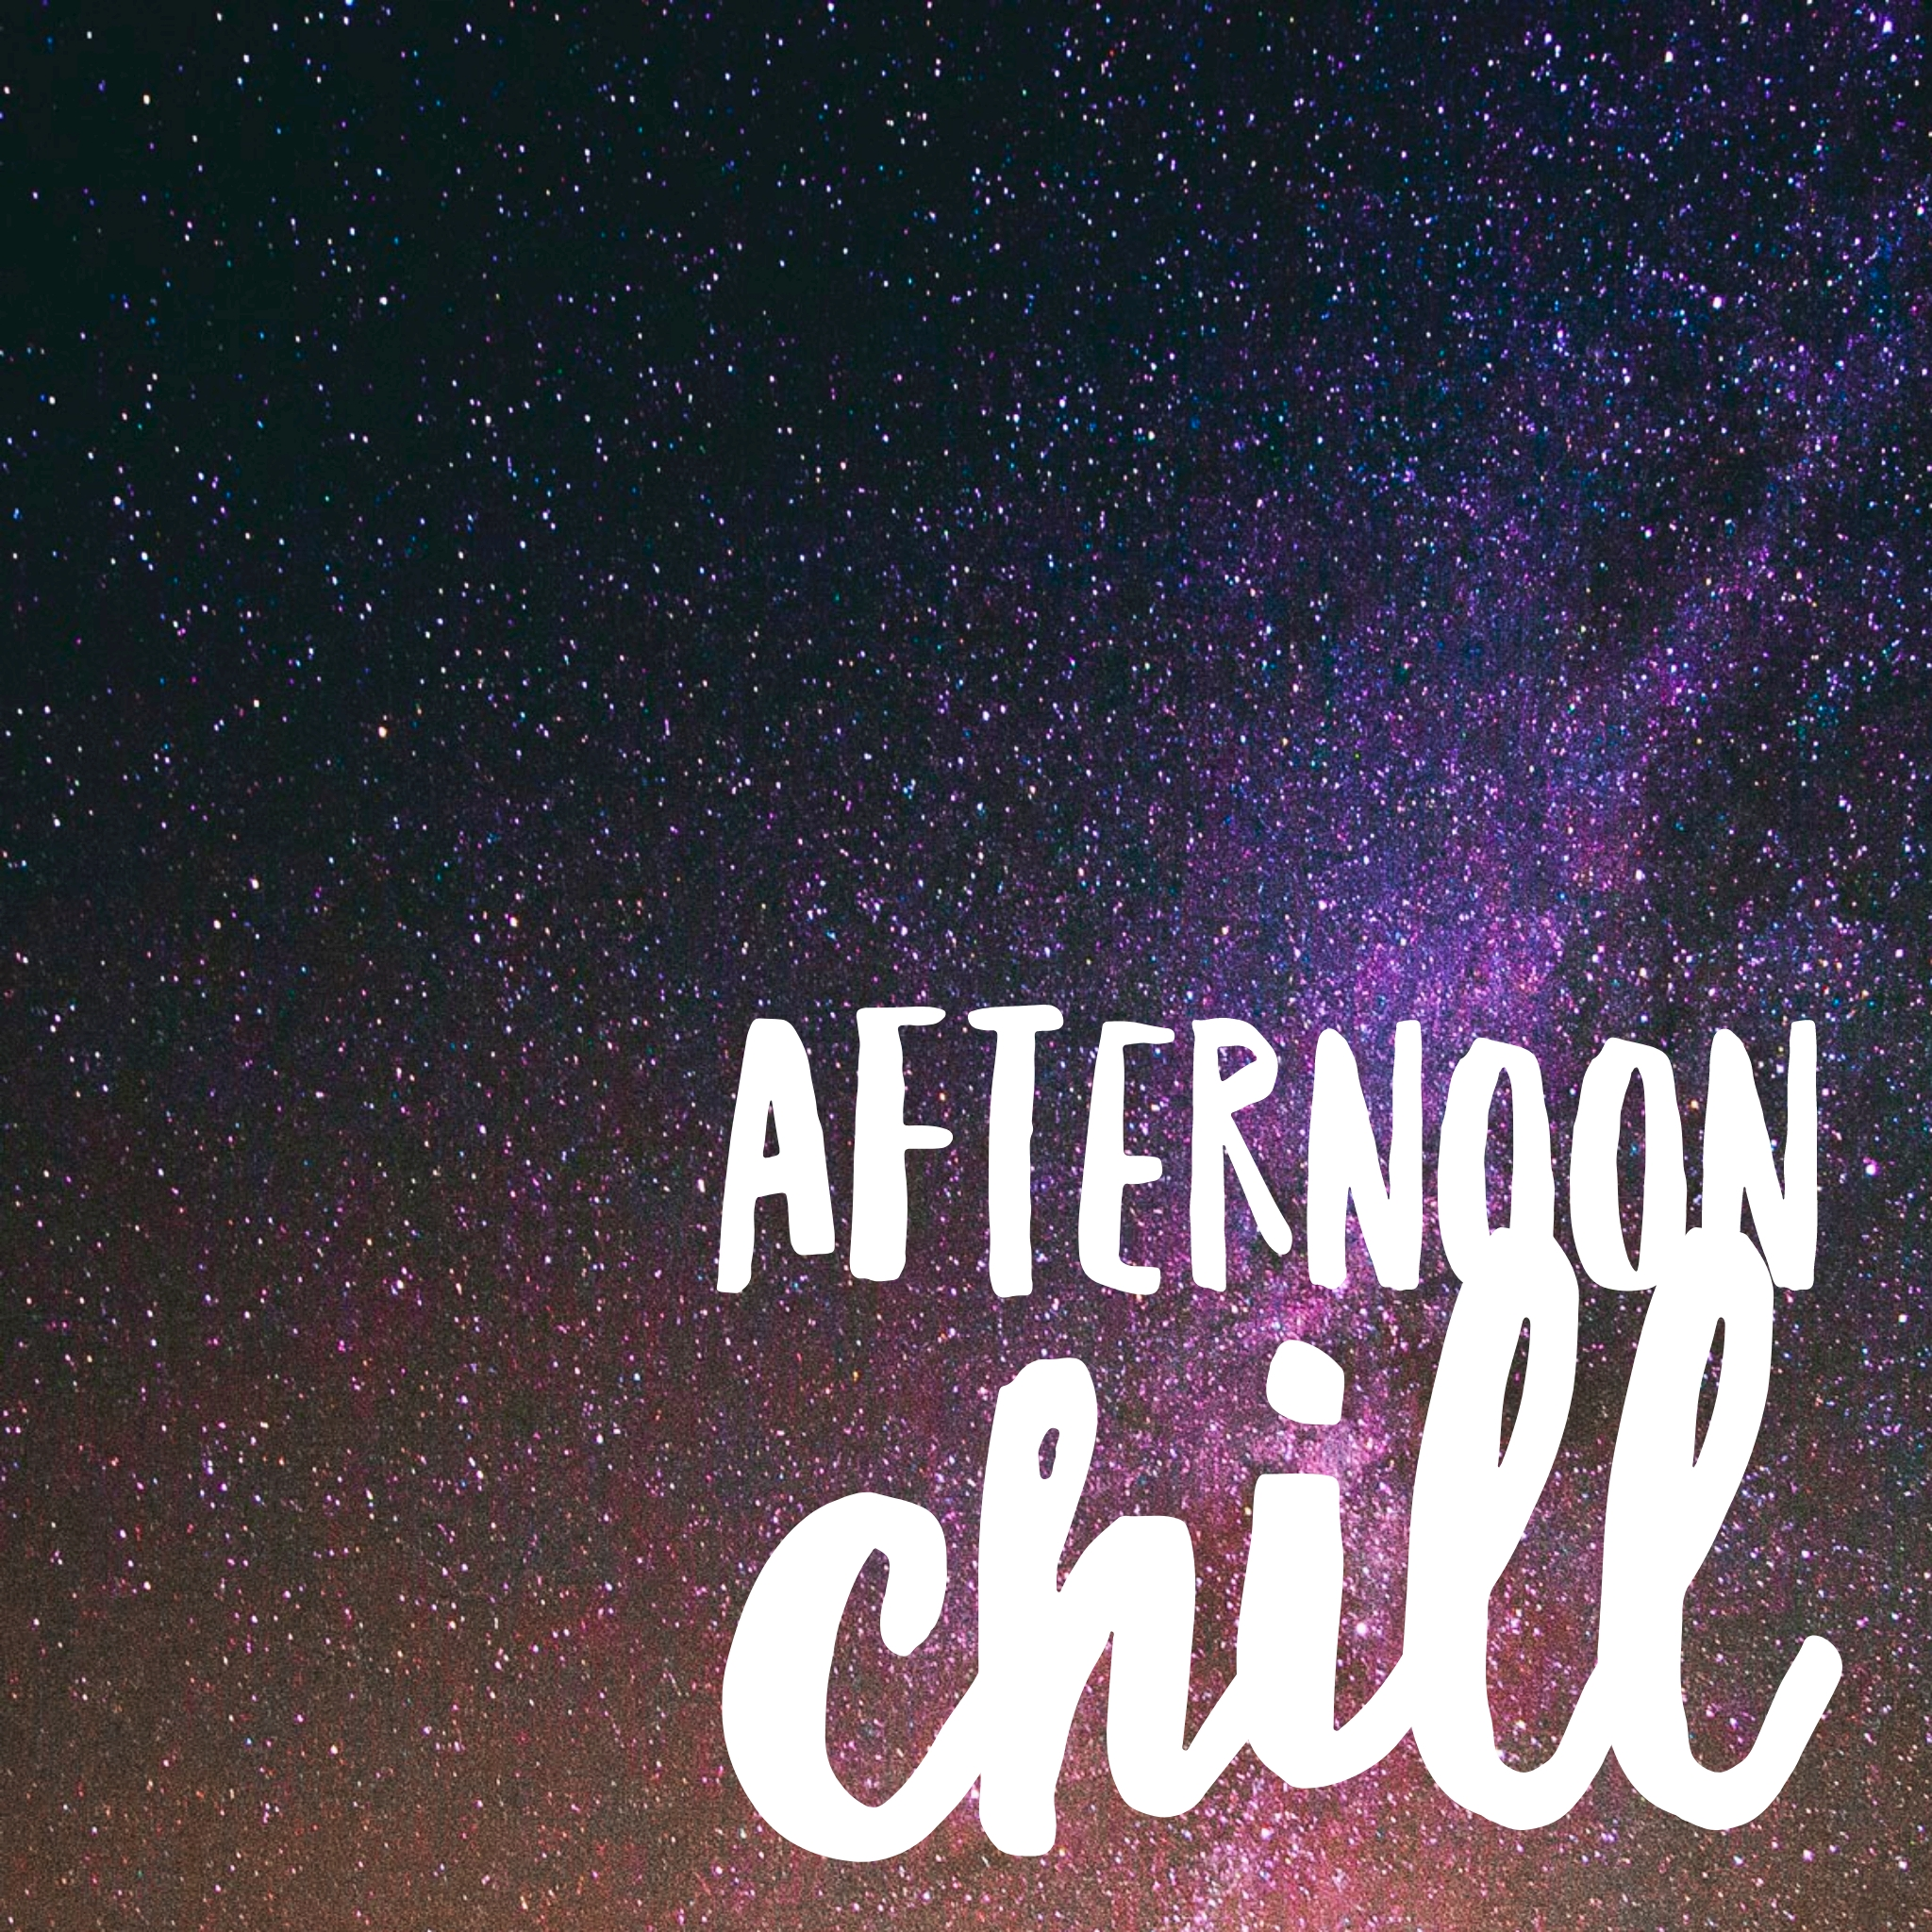 Aftercare that actually cares. - Welcome to Afternoon Chill.Aftercare for rising 1st-6th grade campers!